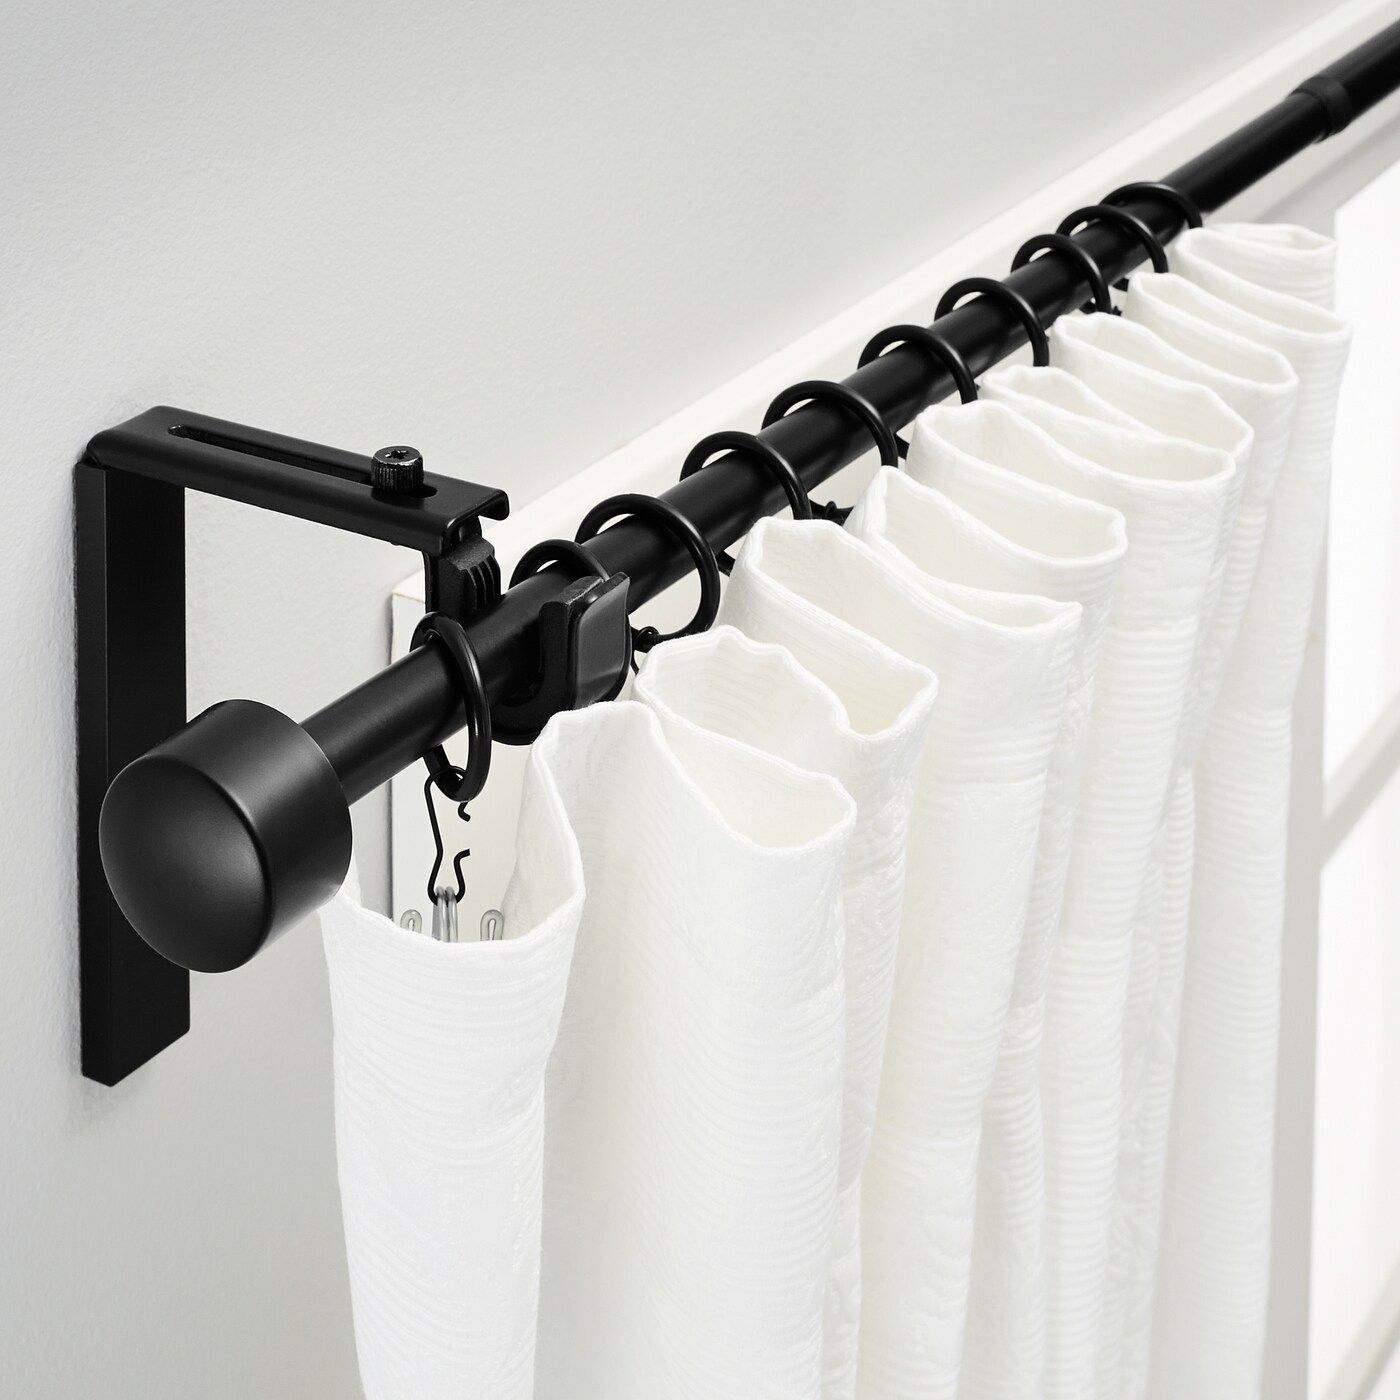 Racka Curtain Rod Combination Black 47 1 4 82 5 8 120 210 Cm In 2020 Black Curtain Rods Curtain Rods Ikea Curtain Rods